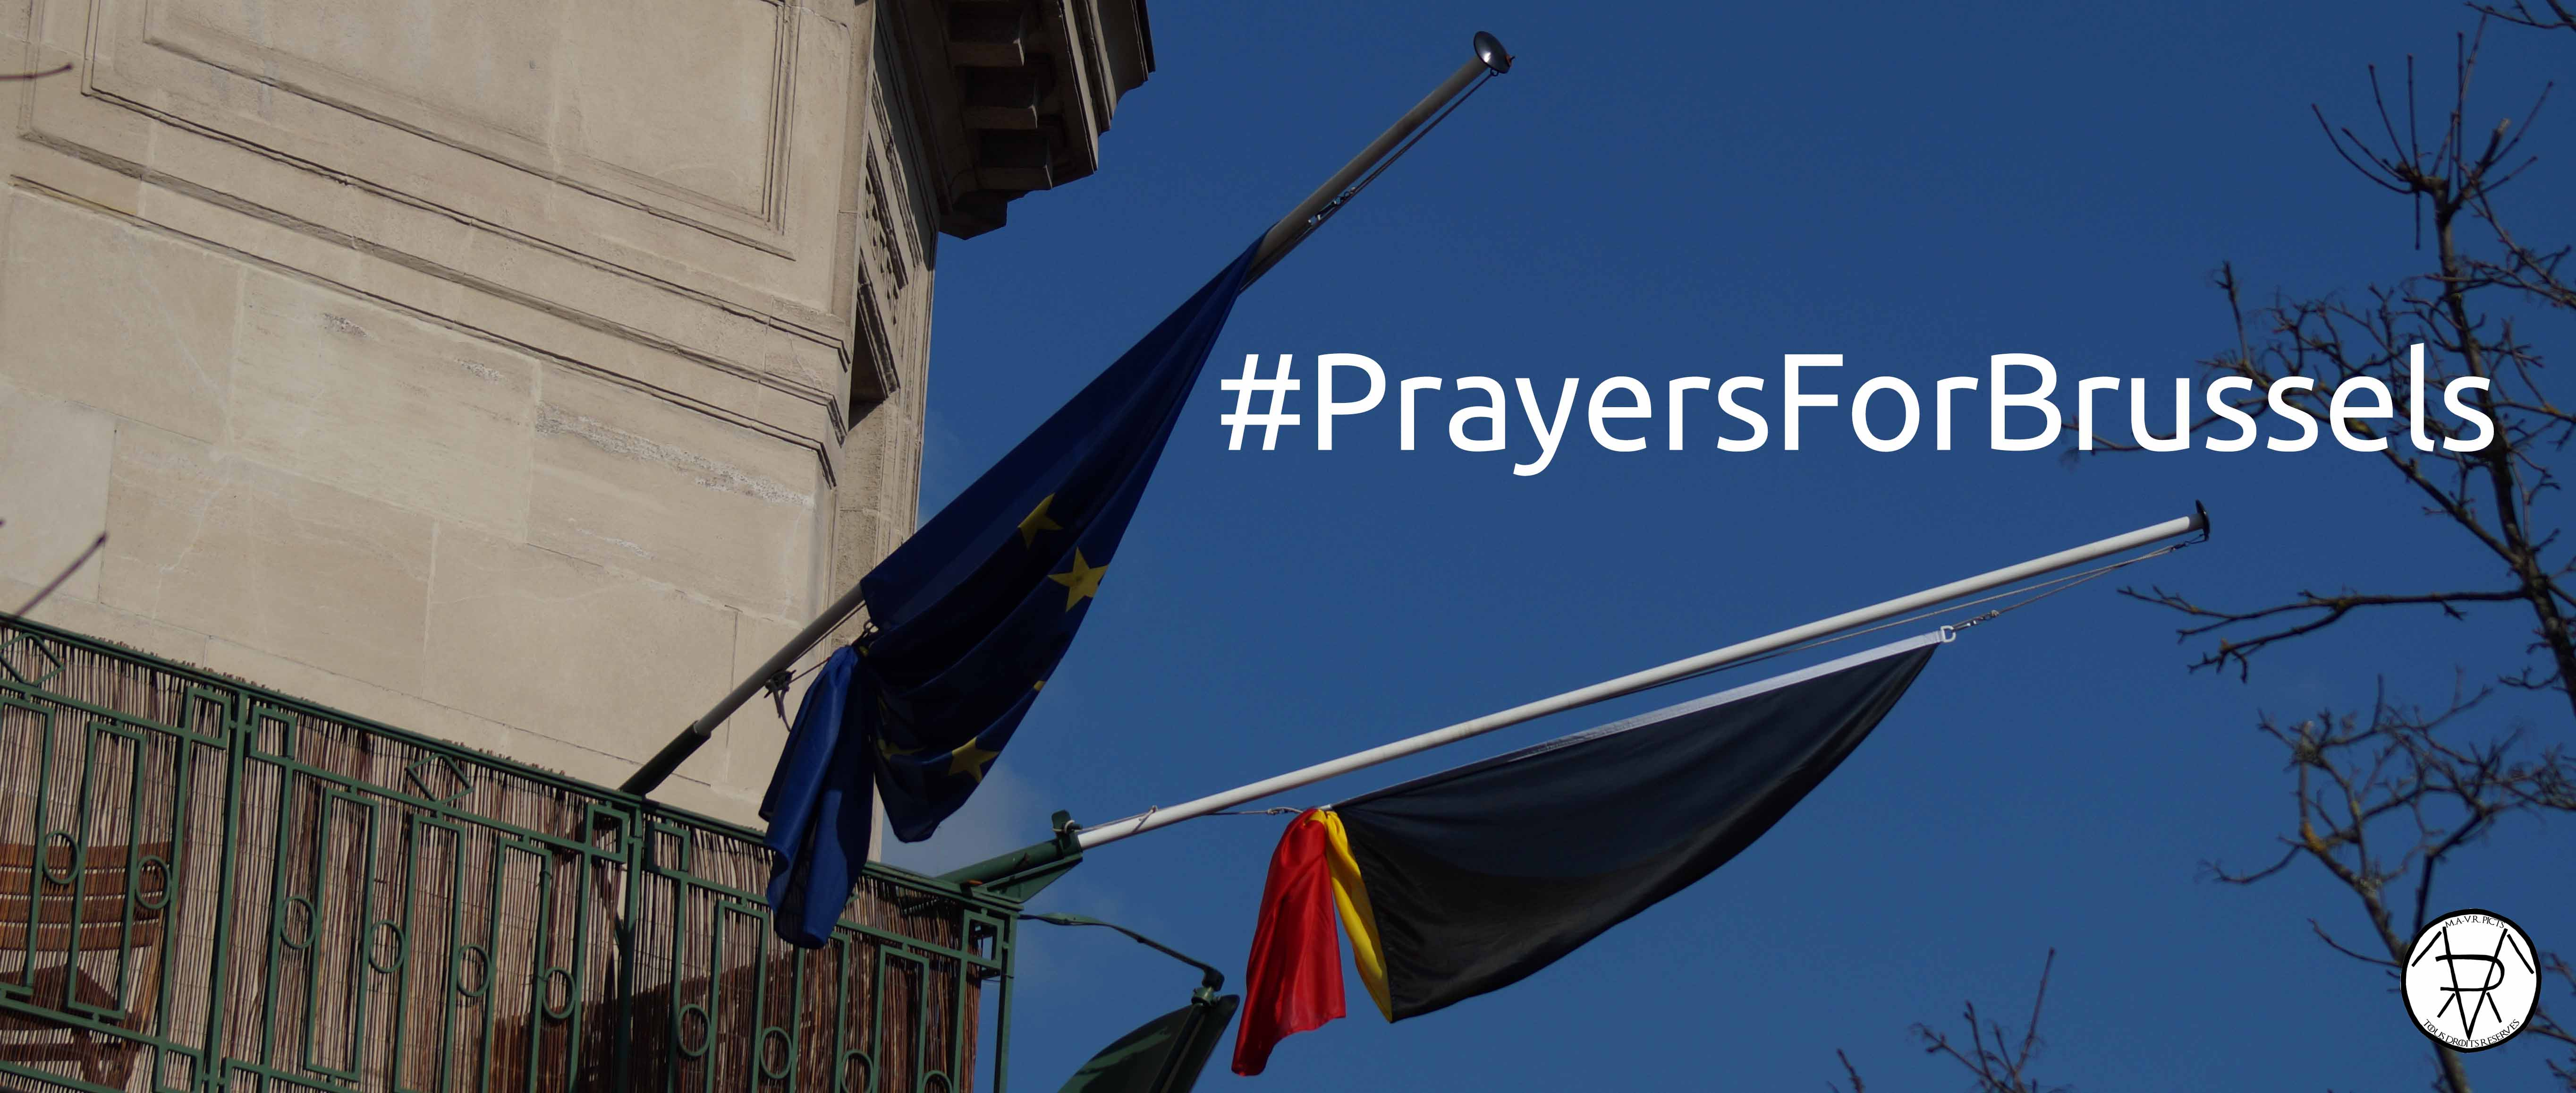 PrayersForBrussels